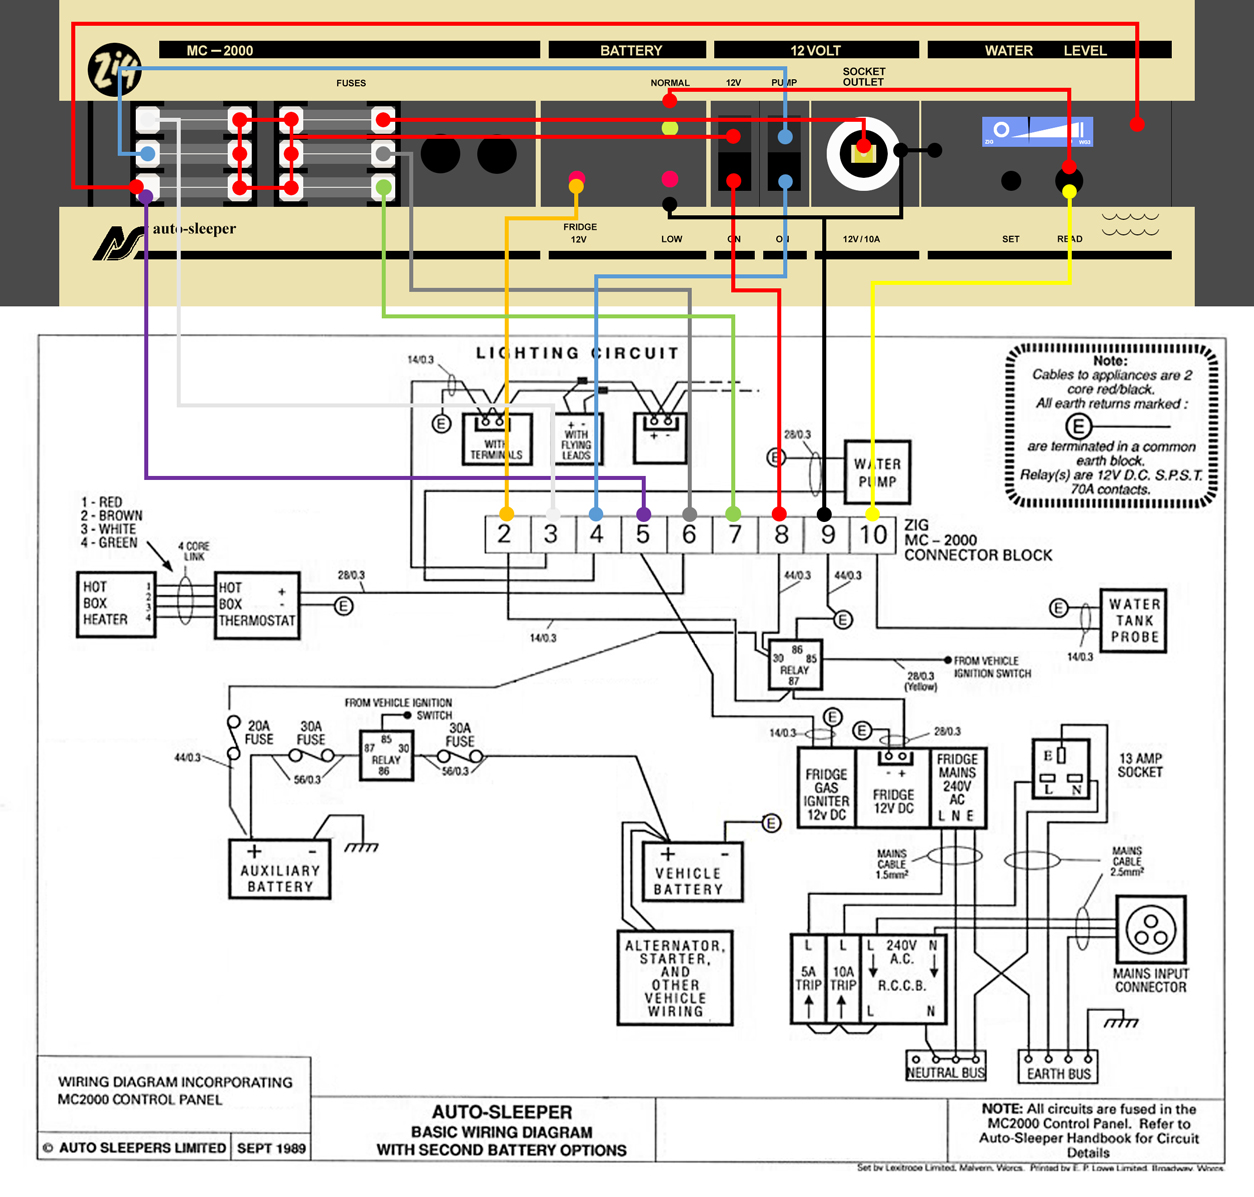 zig unit wiring diagram wiring diagram blog caravan zig wiring diagram [ 1254 x 1197 Pixel ]